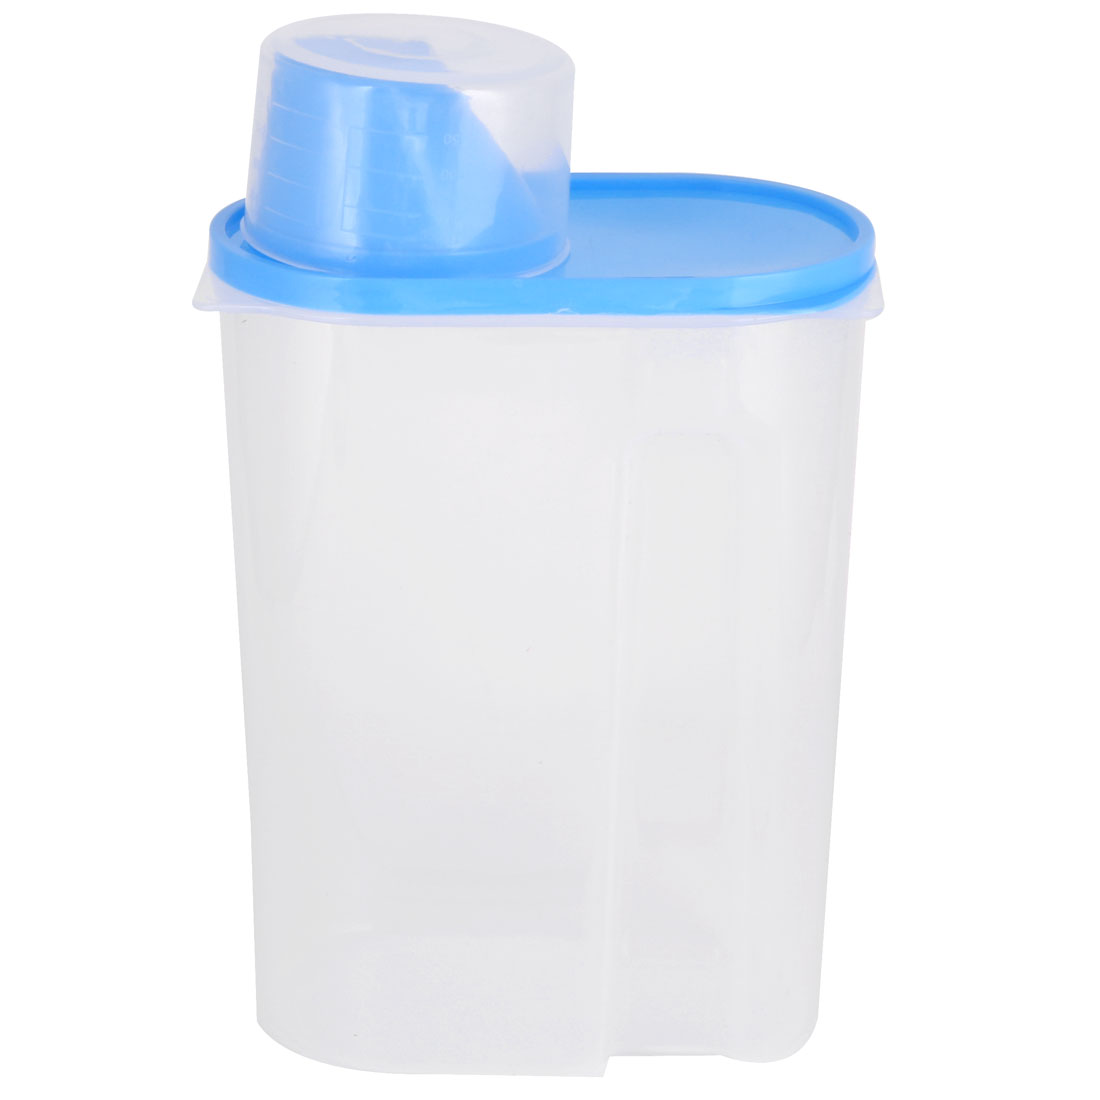 Household Plastic Food Bean Peanut Nut Sugar Cookies Storage Container Clear